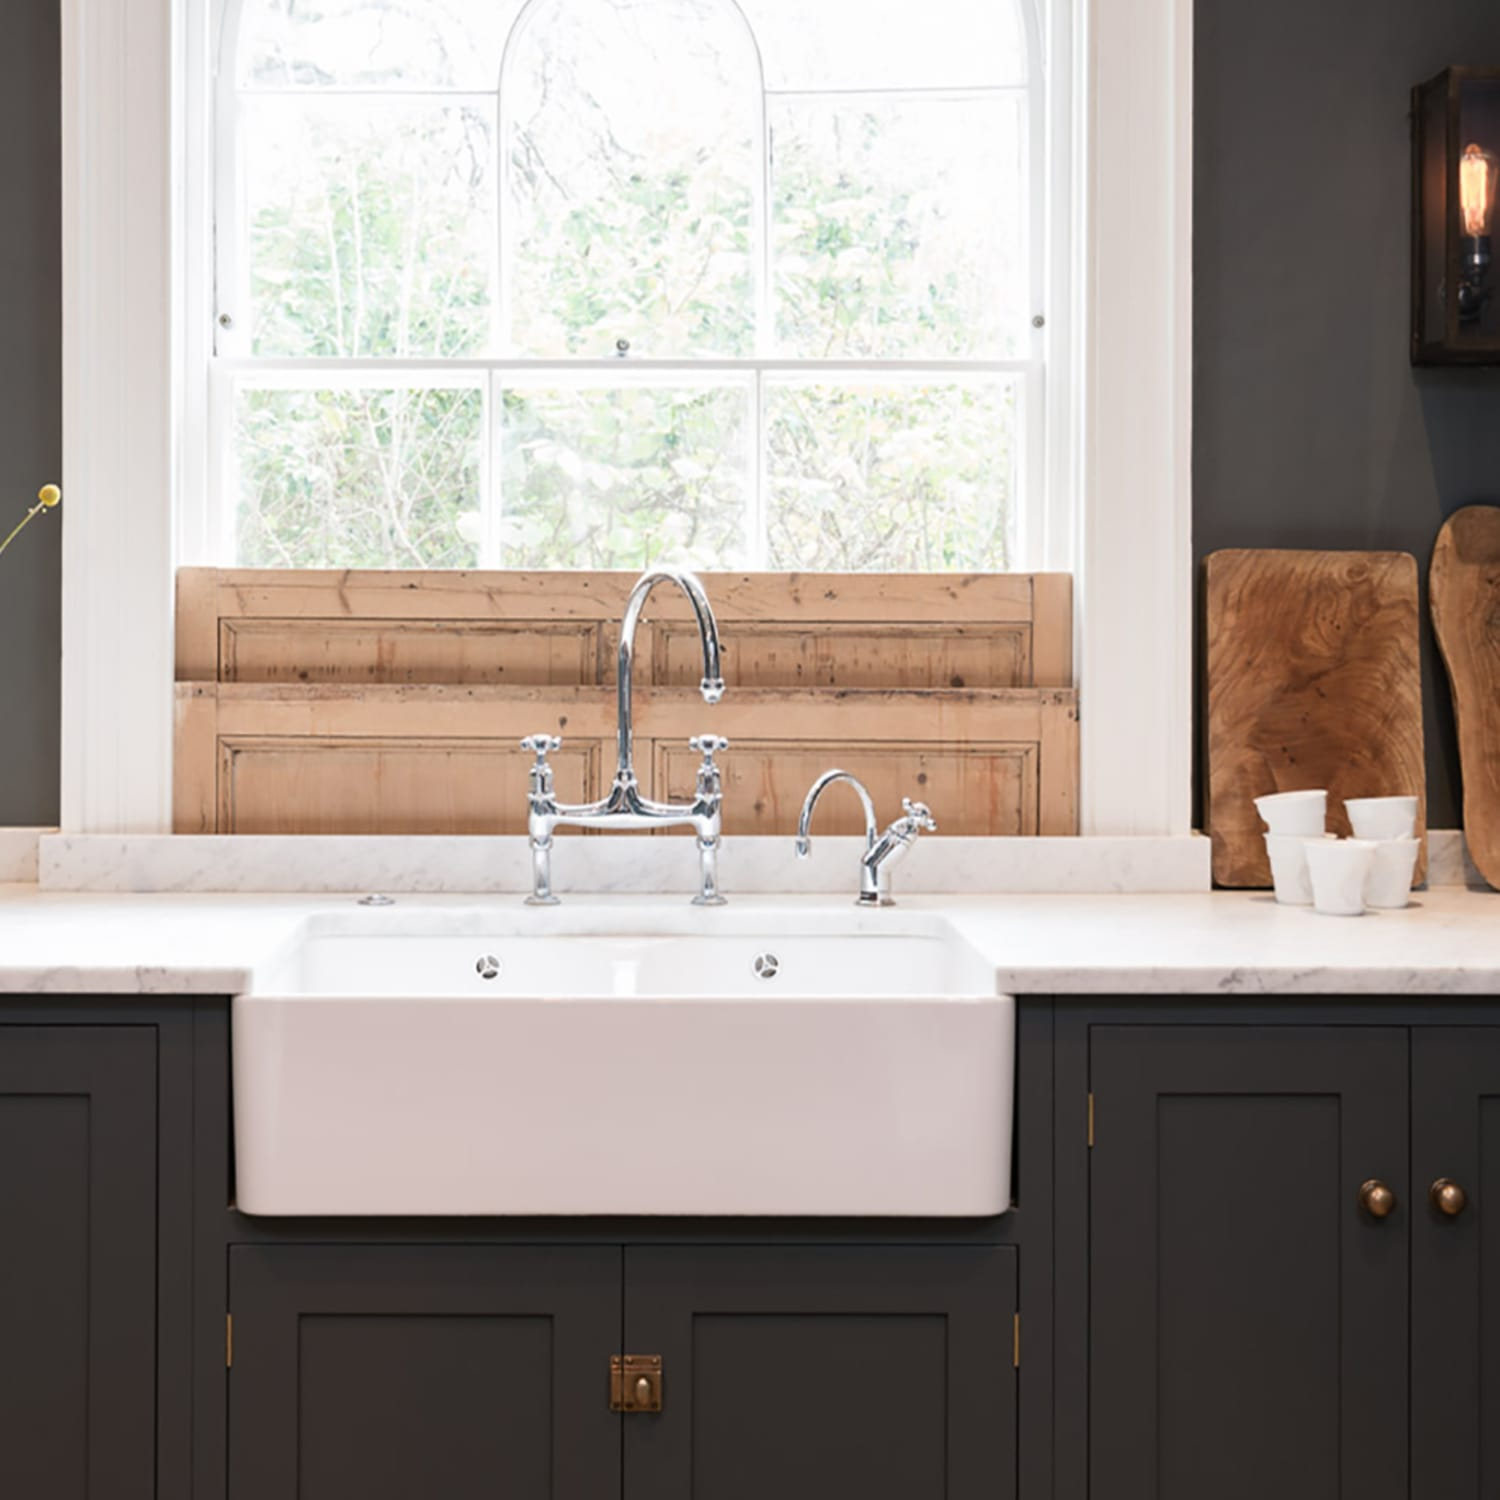 Farmhouse Or Apron Sinks Everything You Need To Know Apartment Therapy